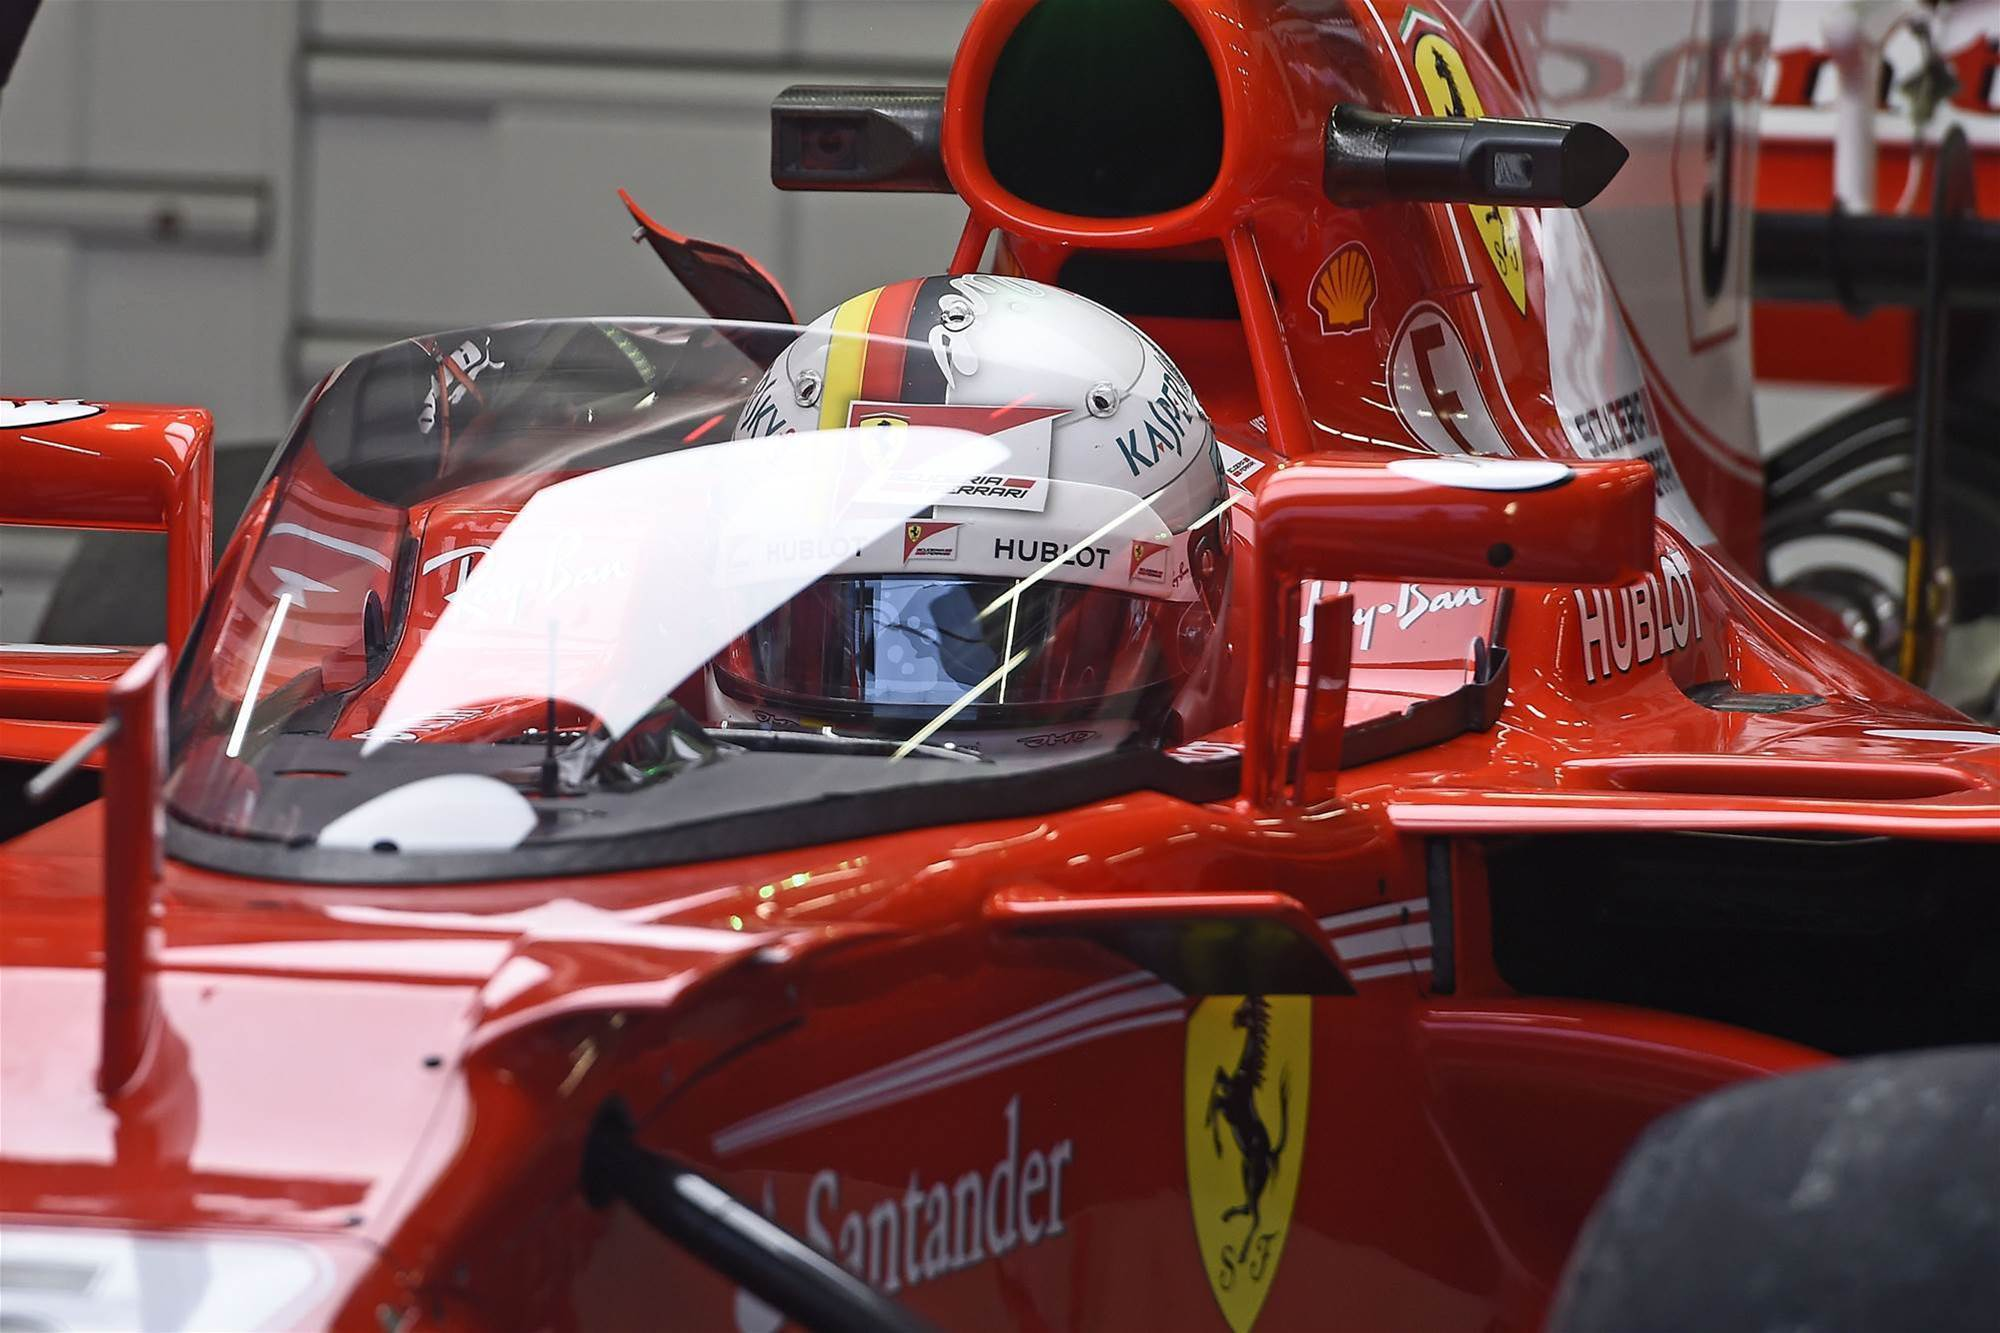 F1 hopes cockpit shield has appeal